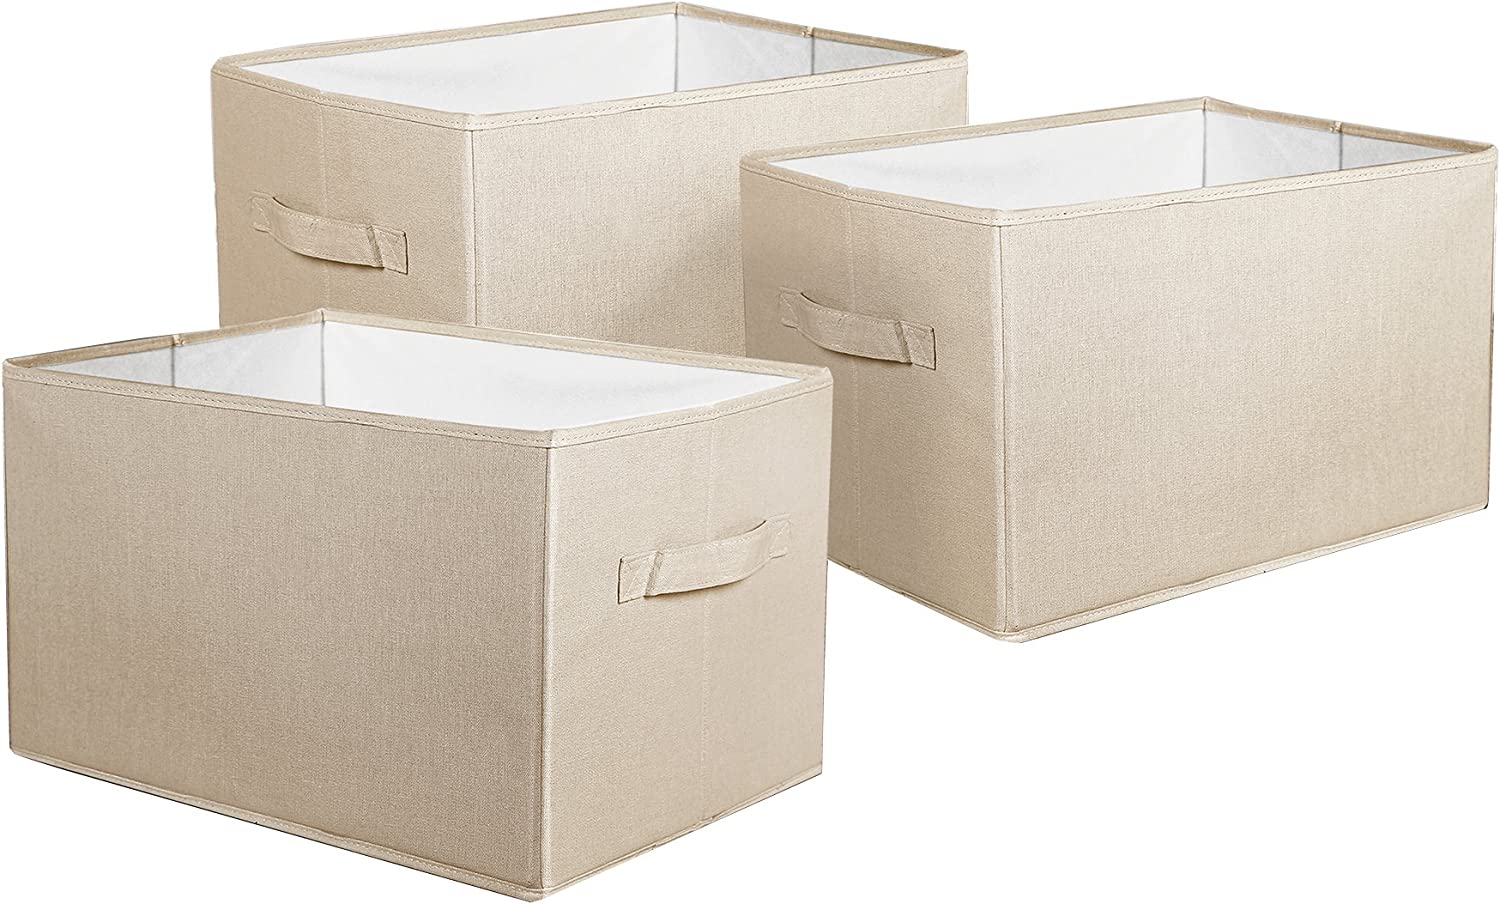 Lush Decor Fabric Covered 3 Ranking TOP12 Piece Storage Box Set Collapsible 1 Max 55% OFF